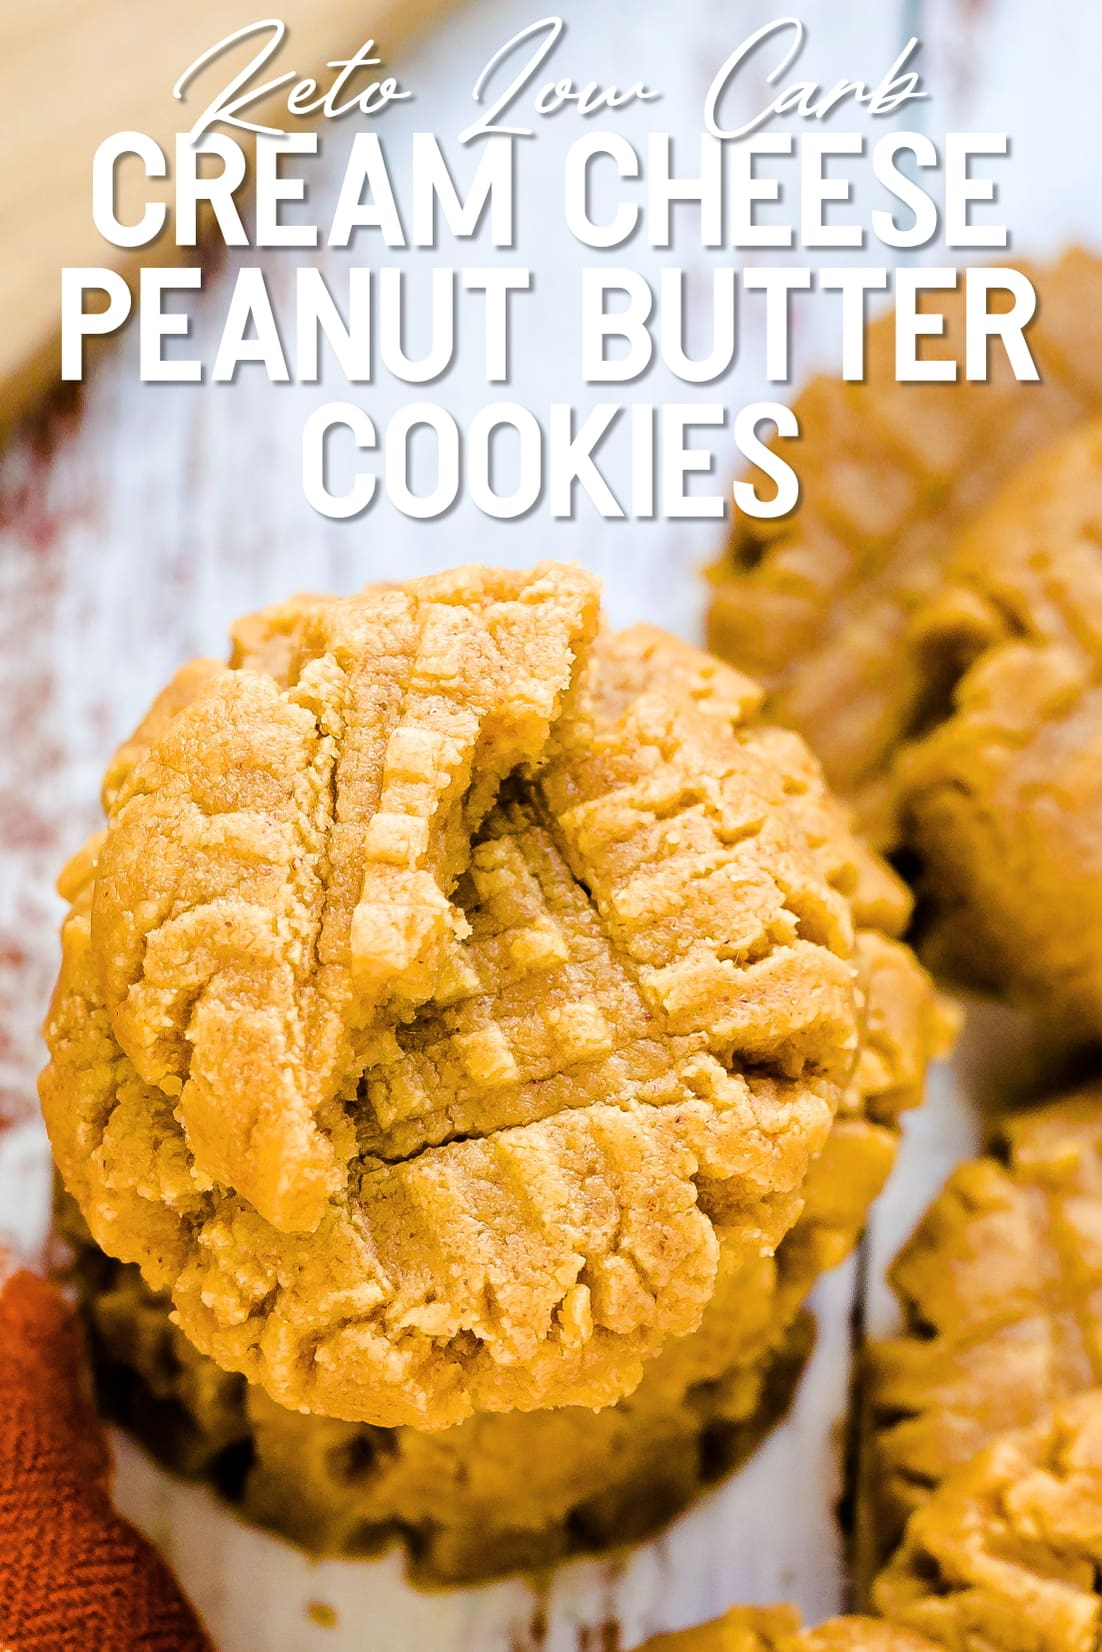 Keto Cream Cheese Peanut Butter Cookies stacked on top of each other